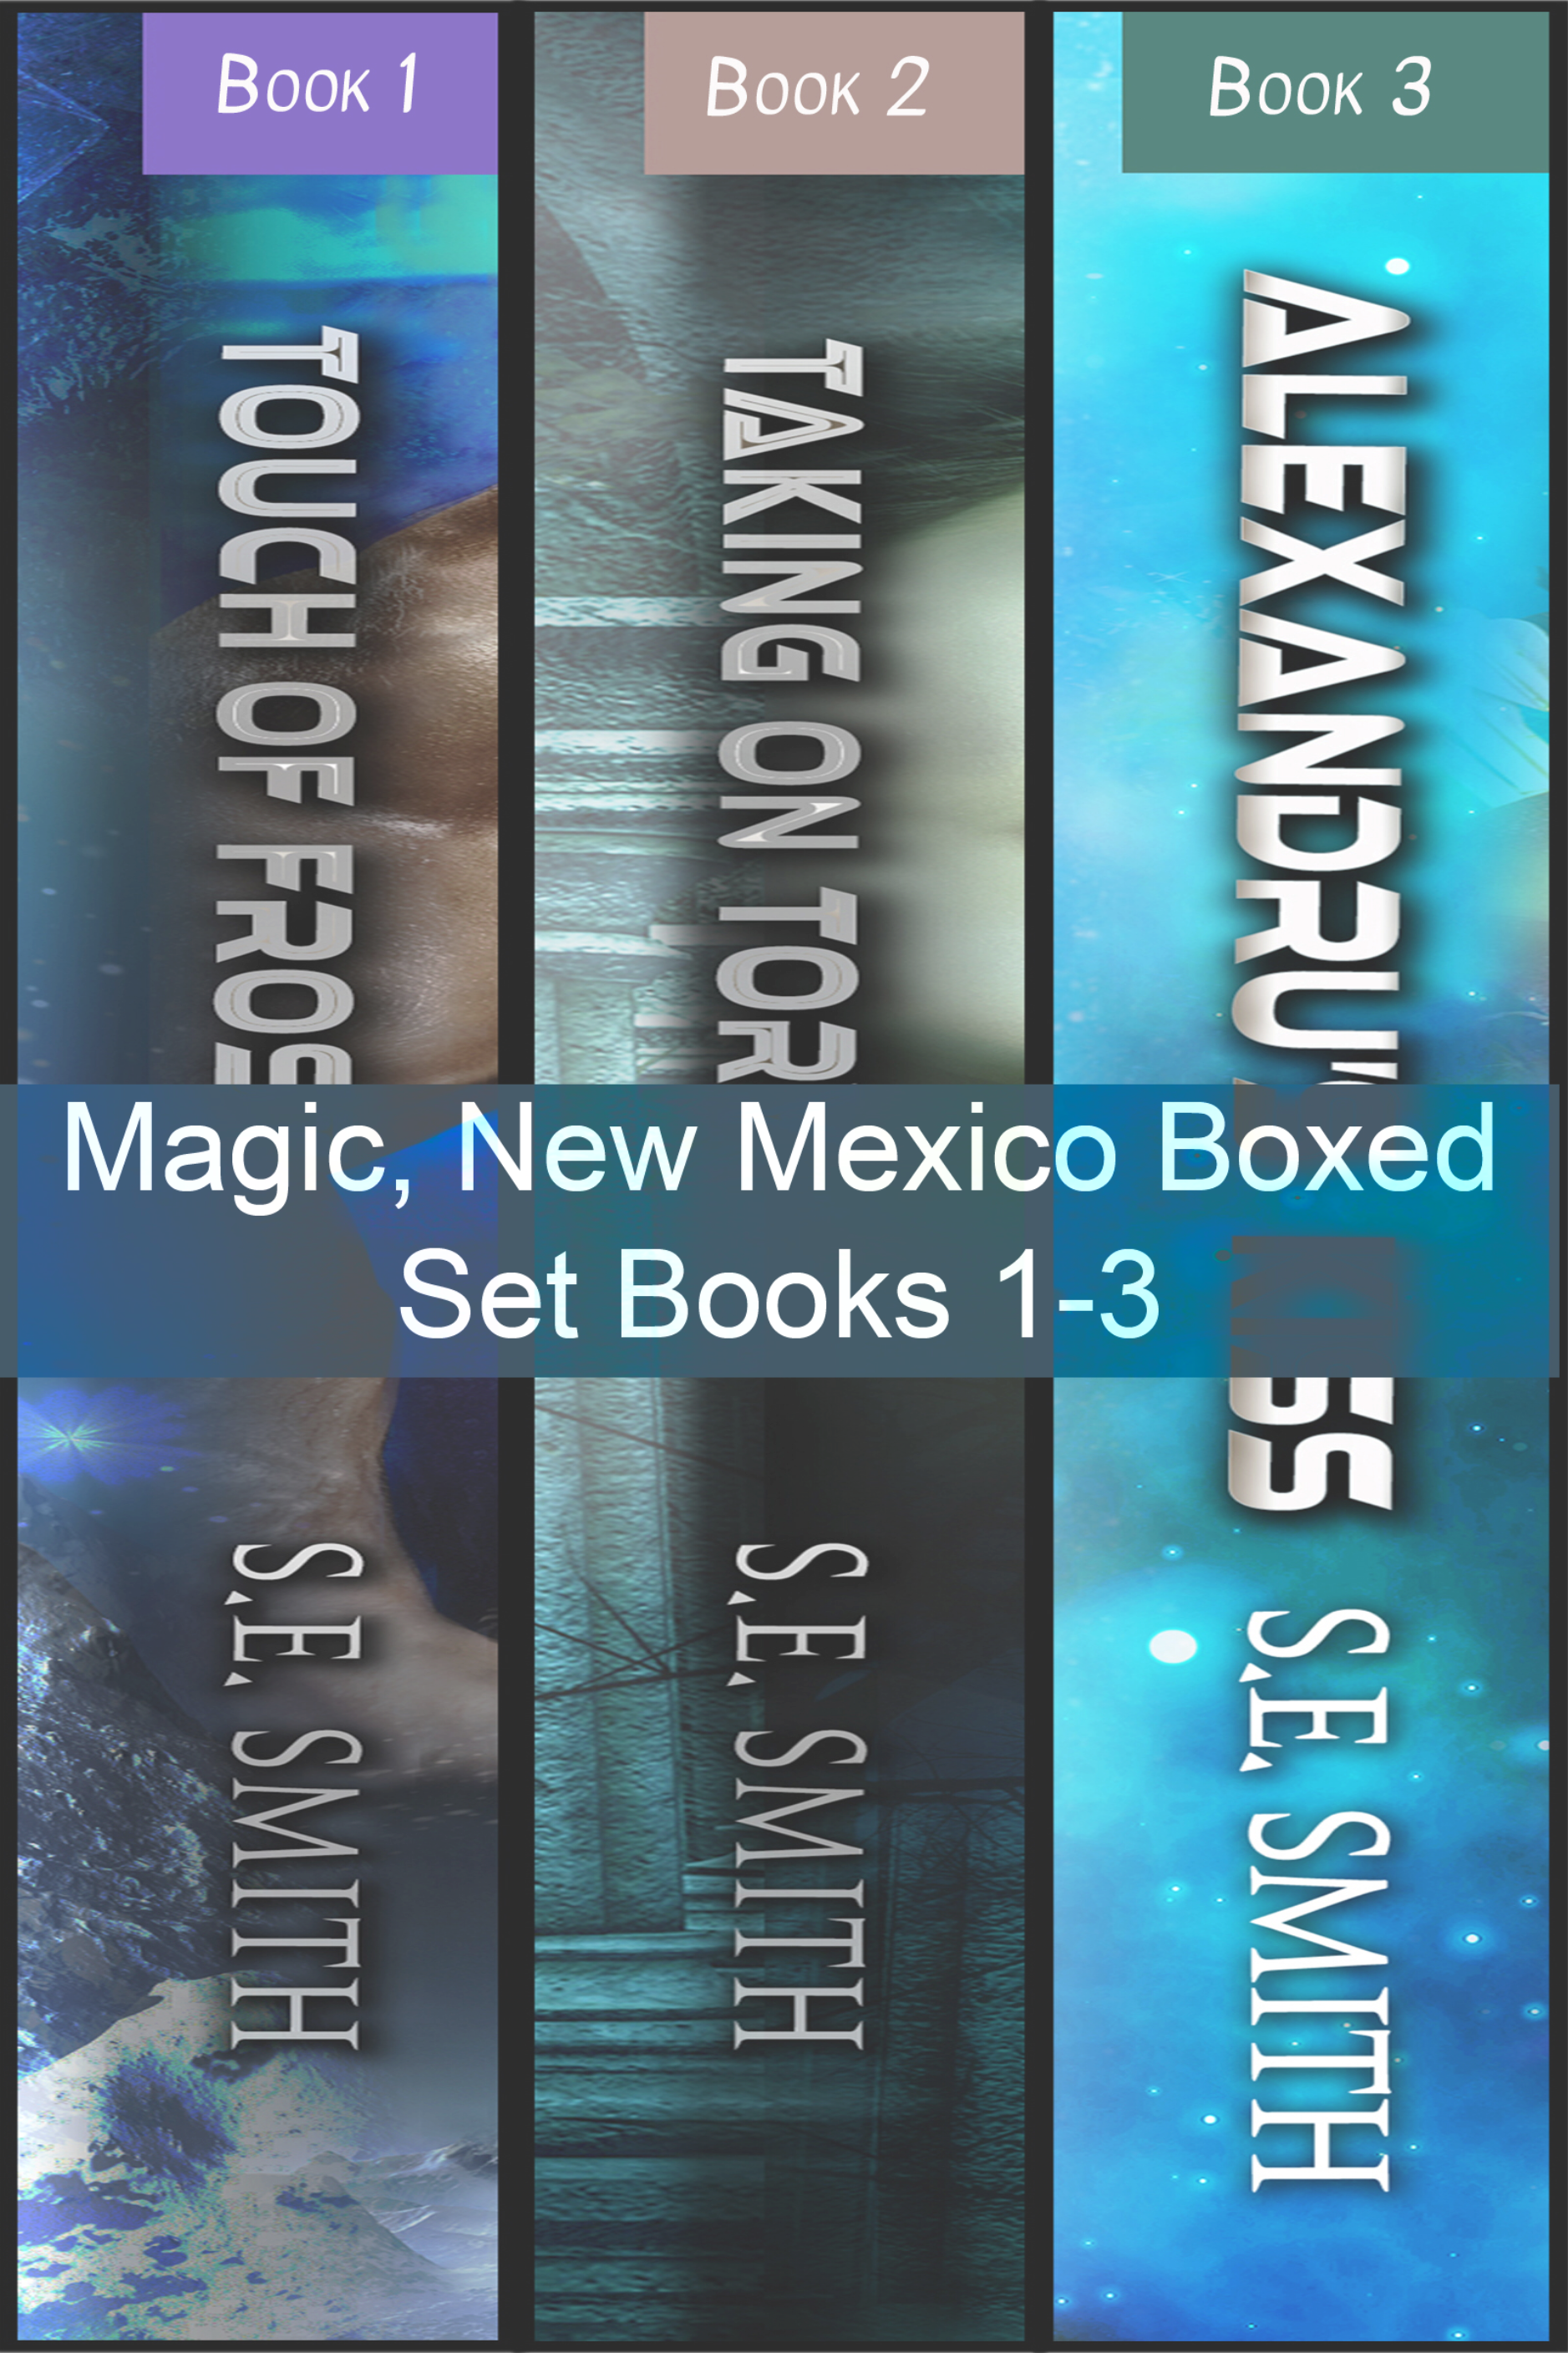 Magic, New Mexico Boxed Set Books 1-3 (ebook: Kindle and epub)